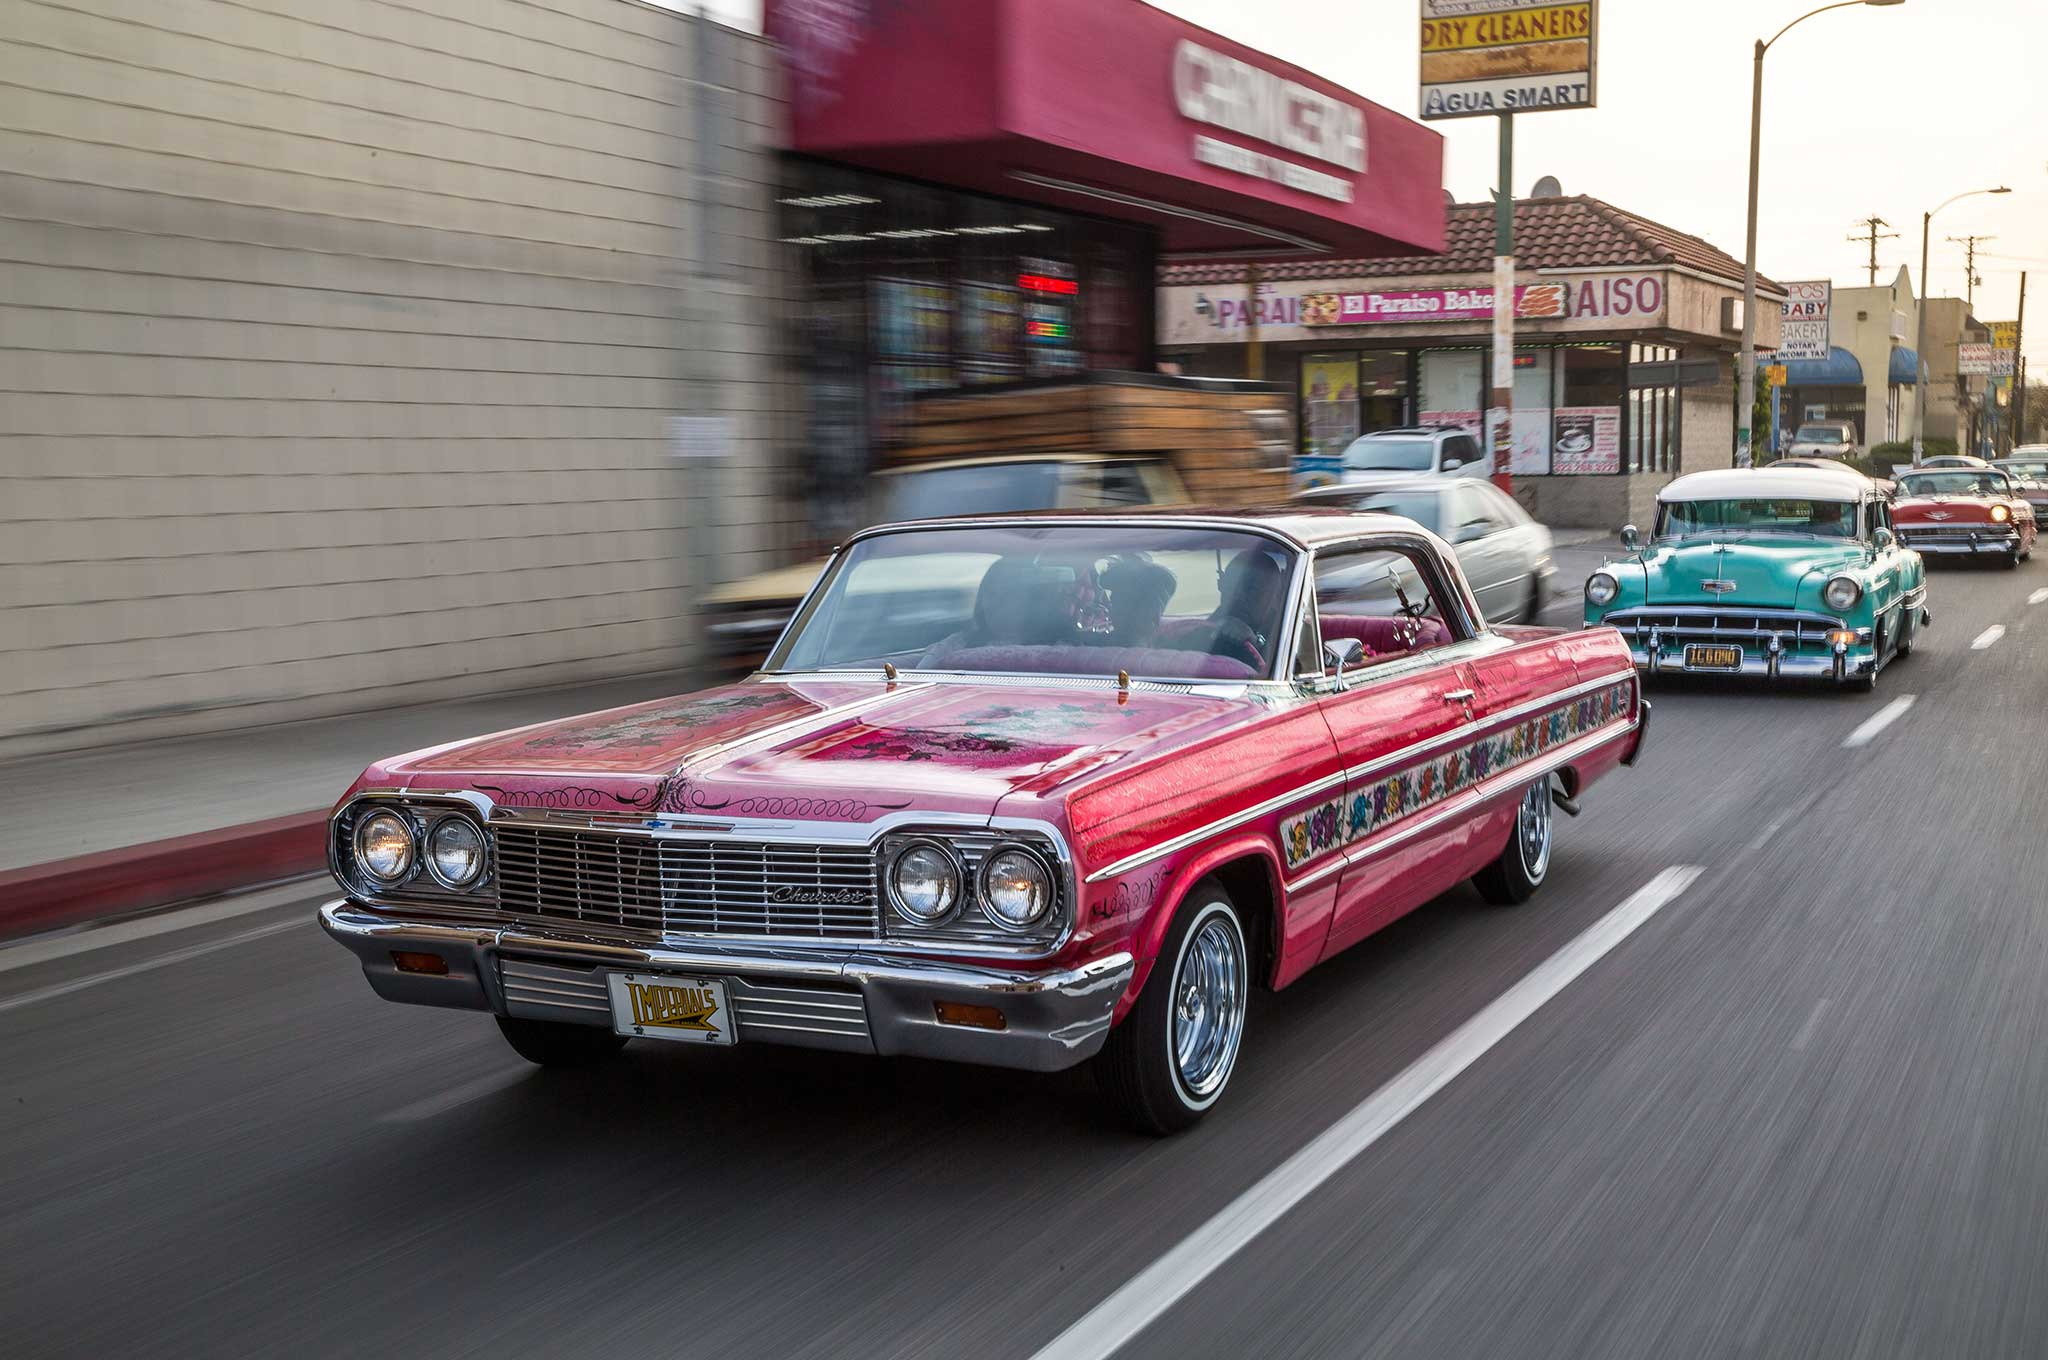 Iconic American Custom Cars on Display in D.C. | Rides & Drives